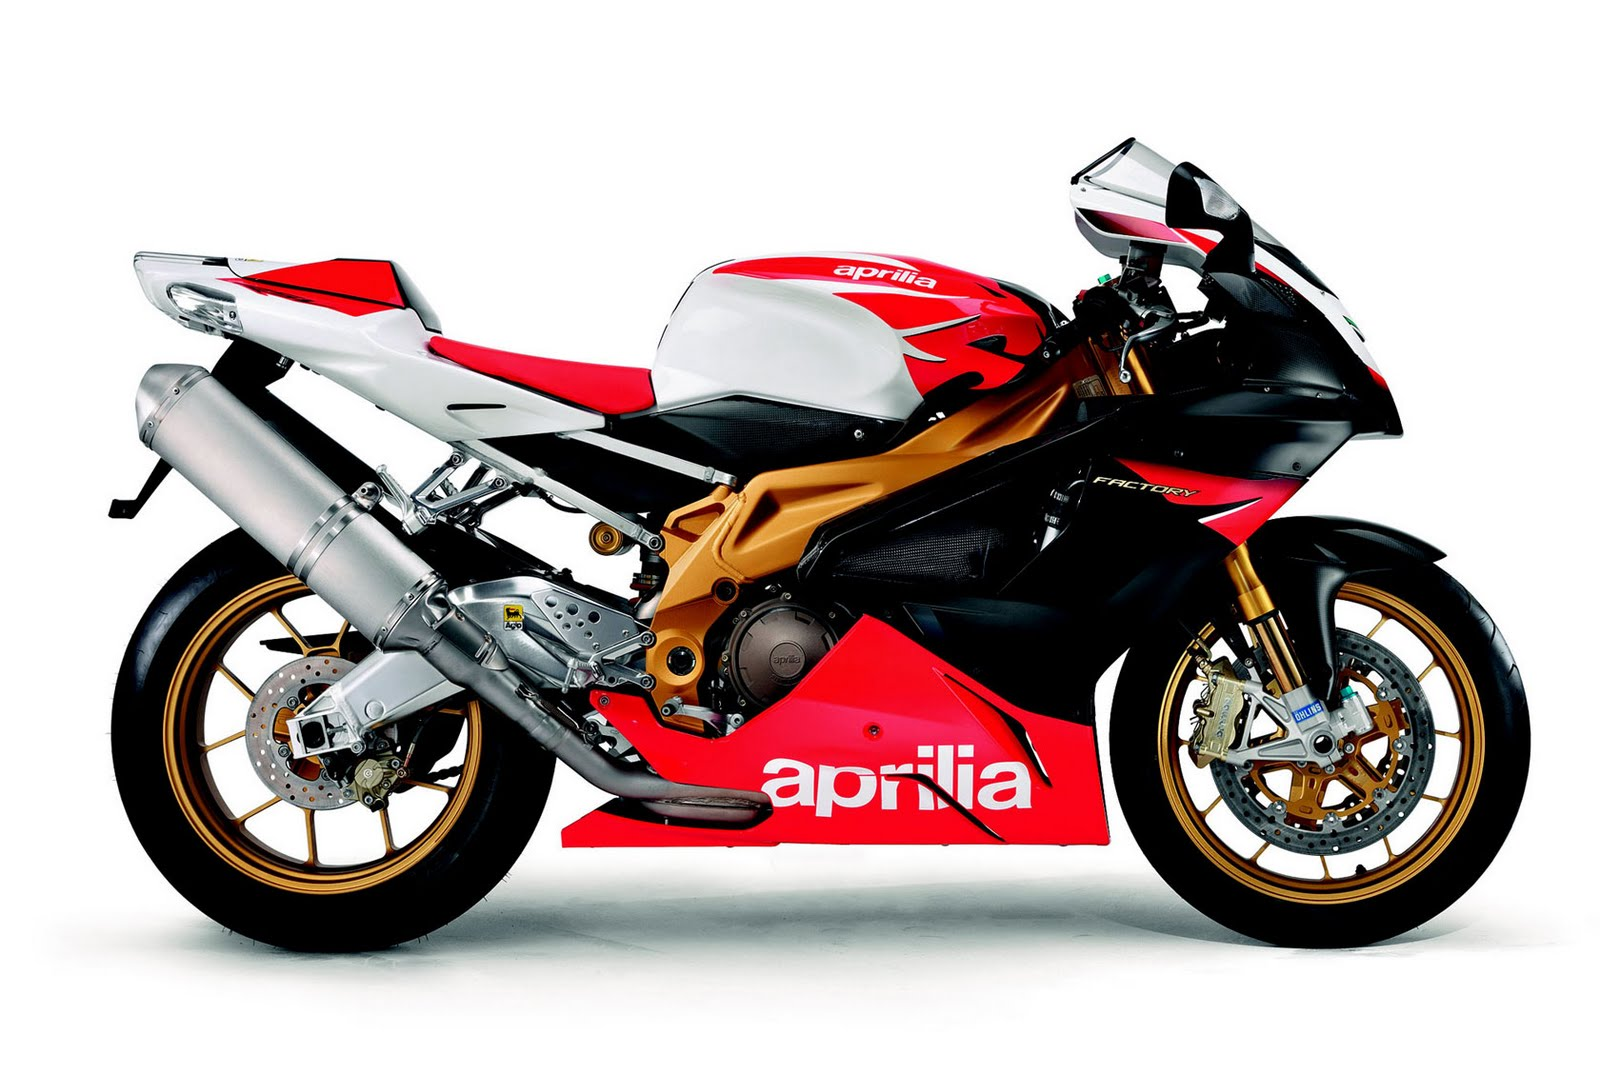 Aprilia Rsv 1000 R 2009 Factory HD Wallpapers Download free images and photos [musssic.tk]